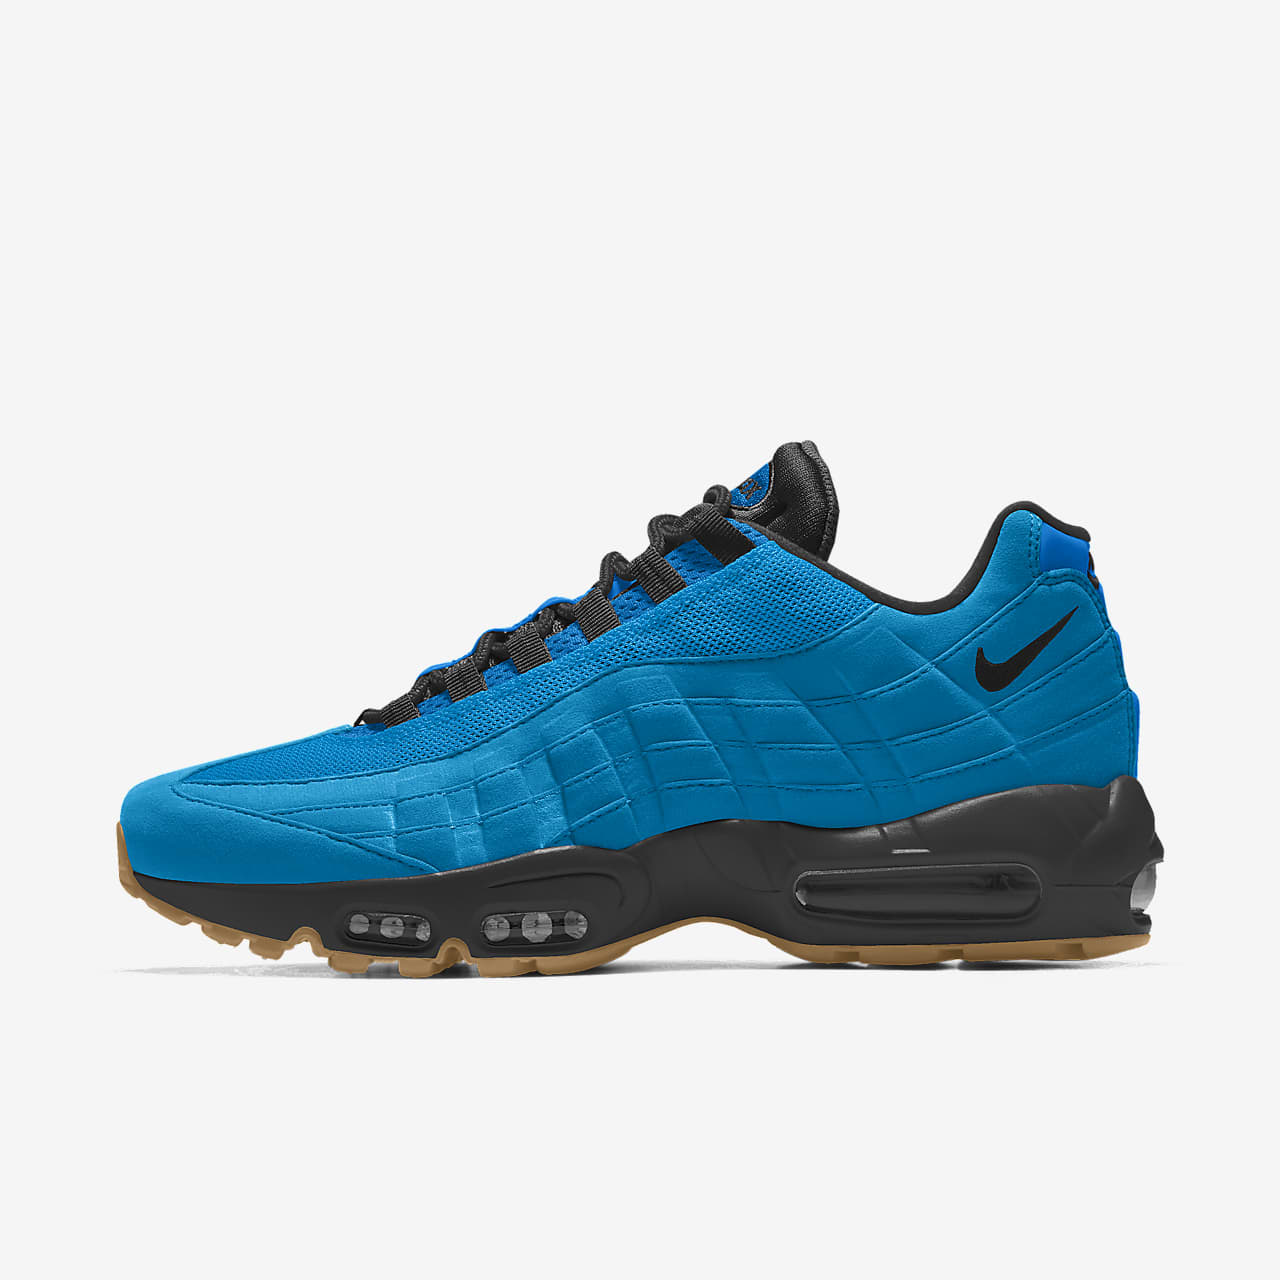 Chaussure personnalisable Nike Air Max 95 By You pour Homme